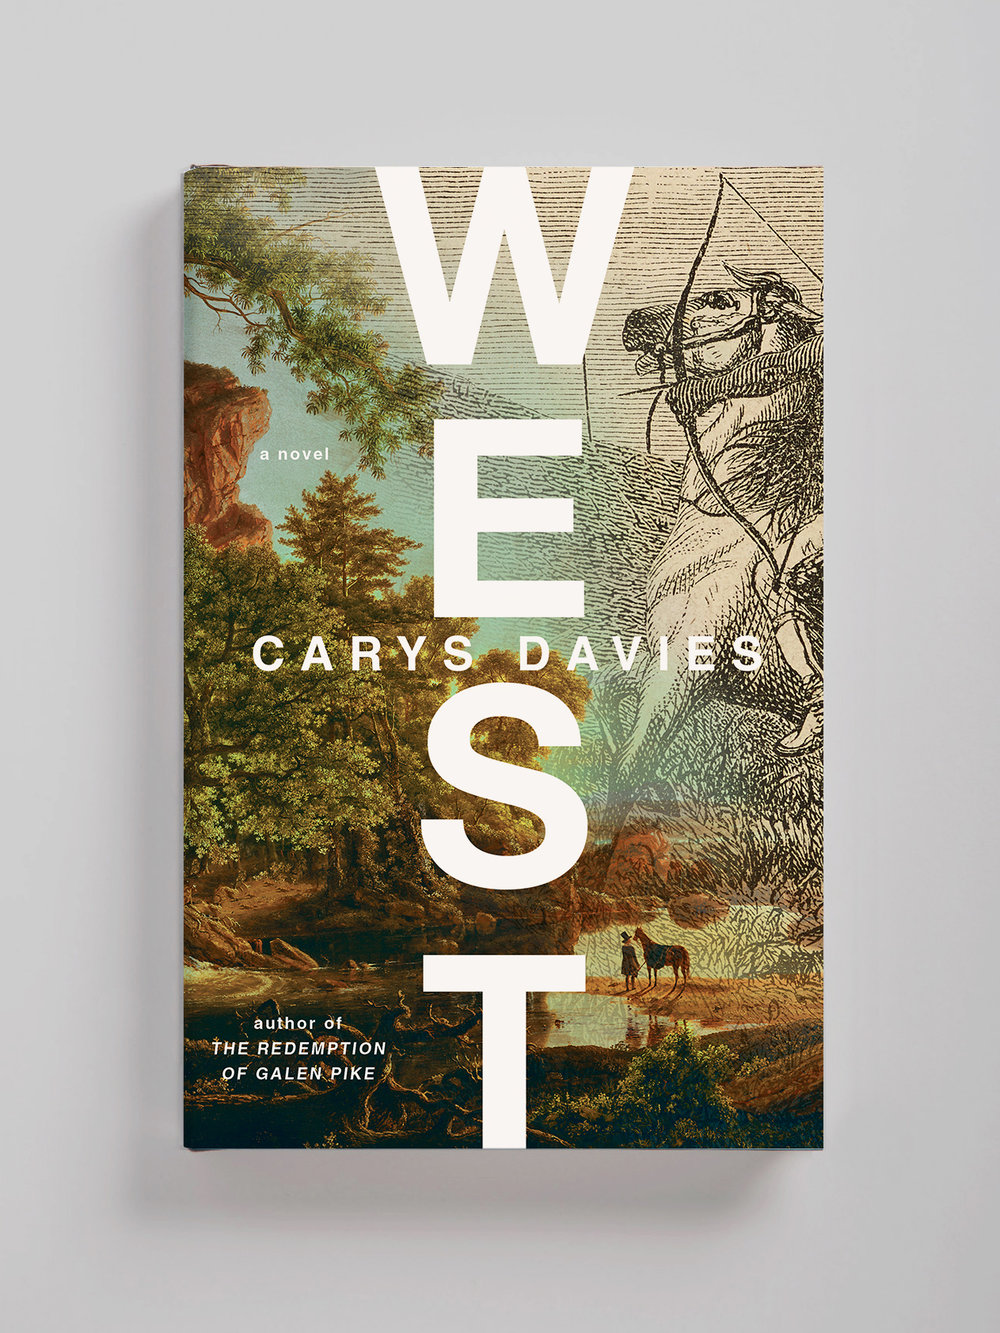 West—Carys Davies